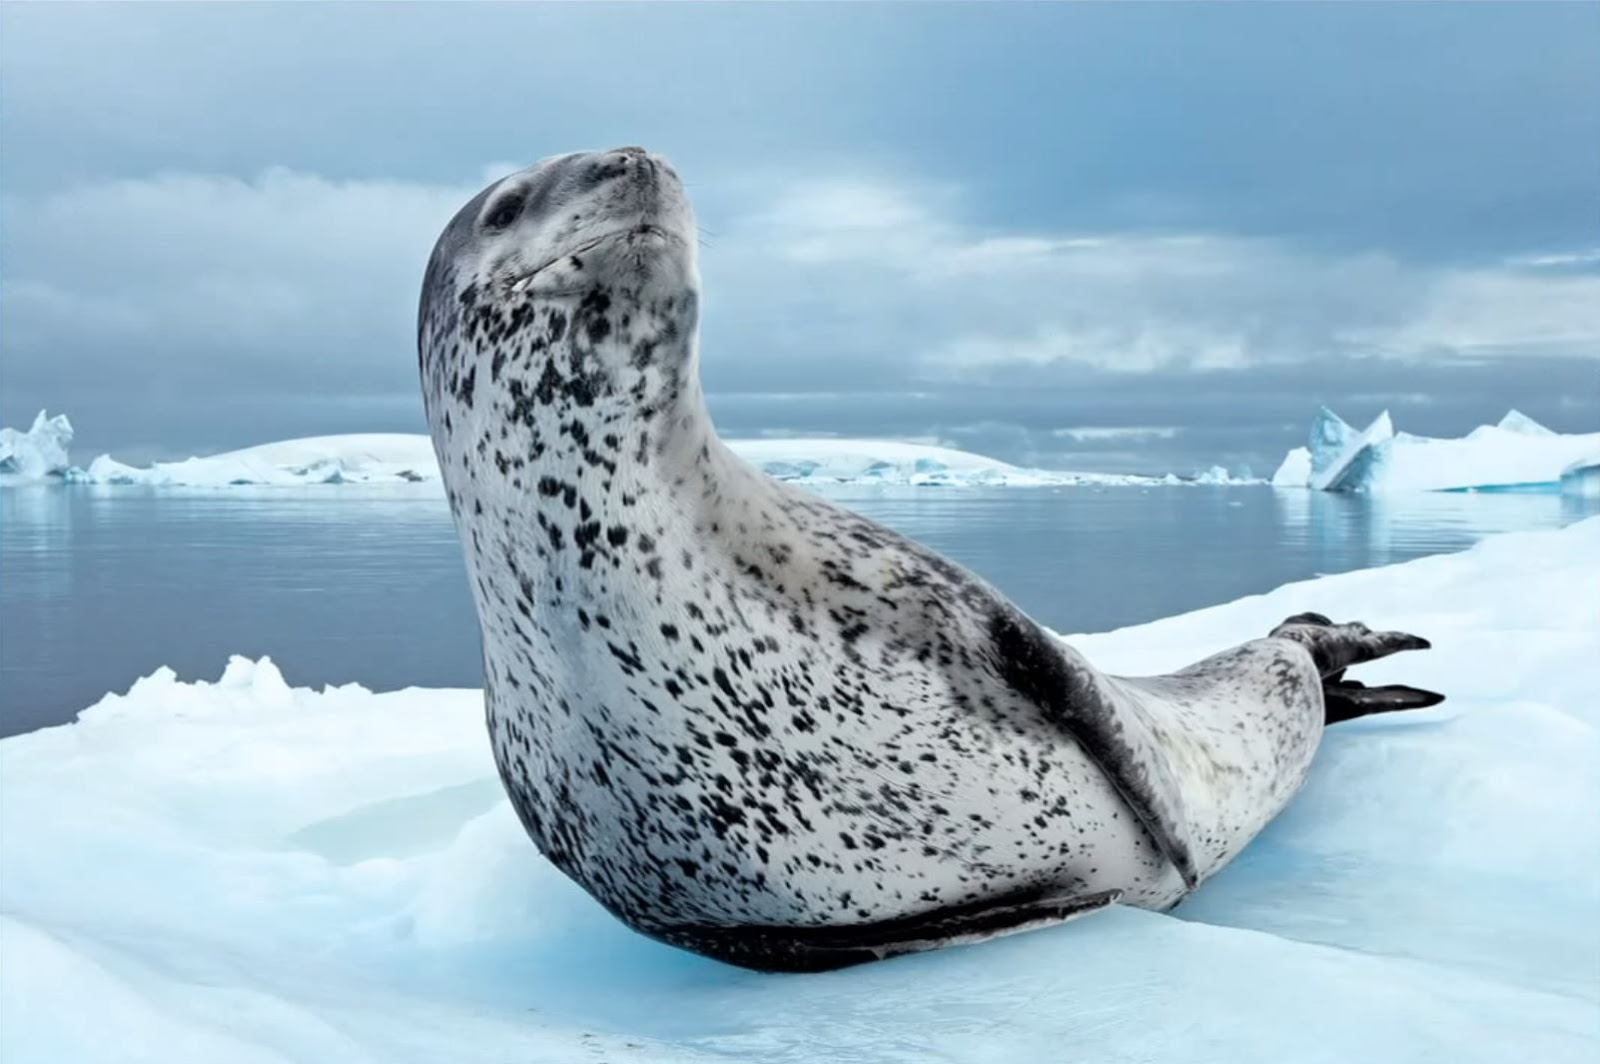 When a seal offers you a penguin, you eat it. - STATIONGOSSIP